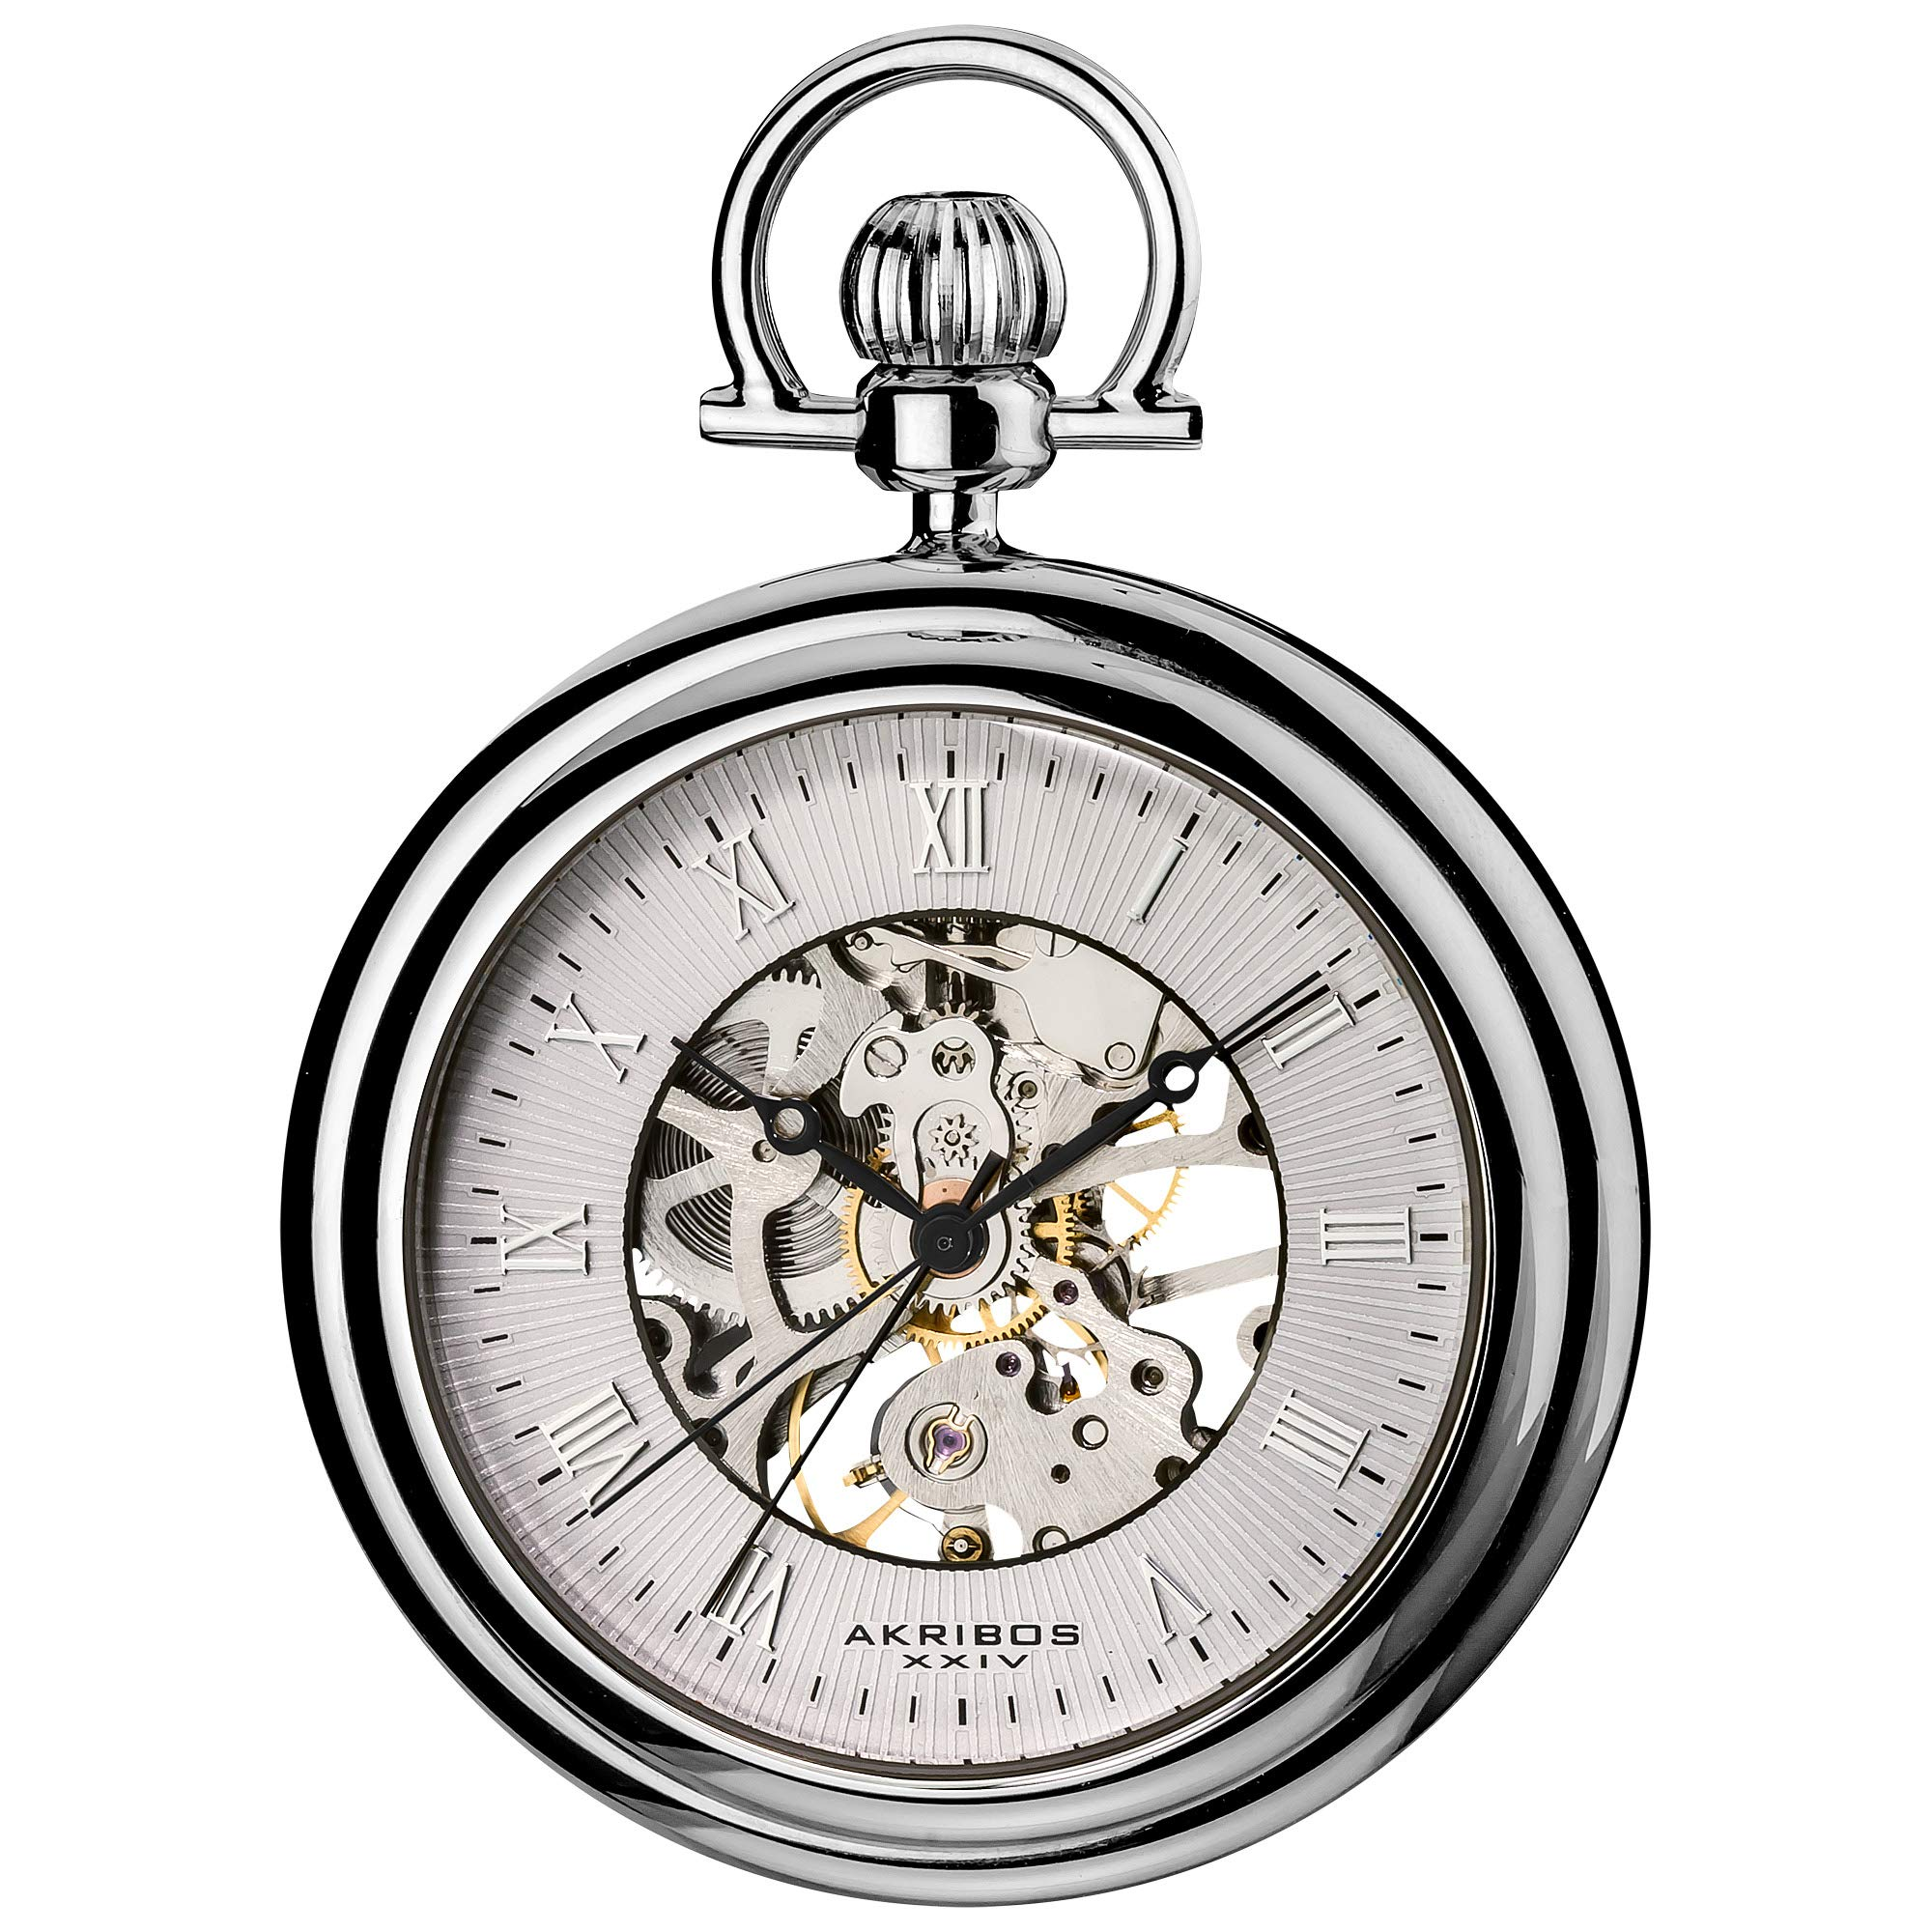 Akribos XXIV Men's Mechanical Skeleton Pocketwatch - Sunray Pattern Dial with Chain Comes with Built-In Glass Display - AK453 by Akribos XXIV